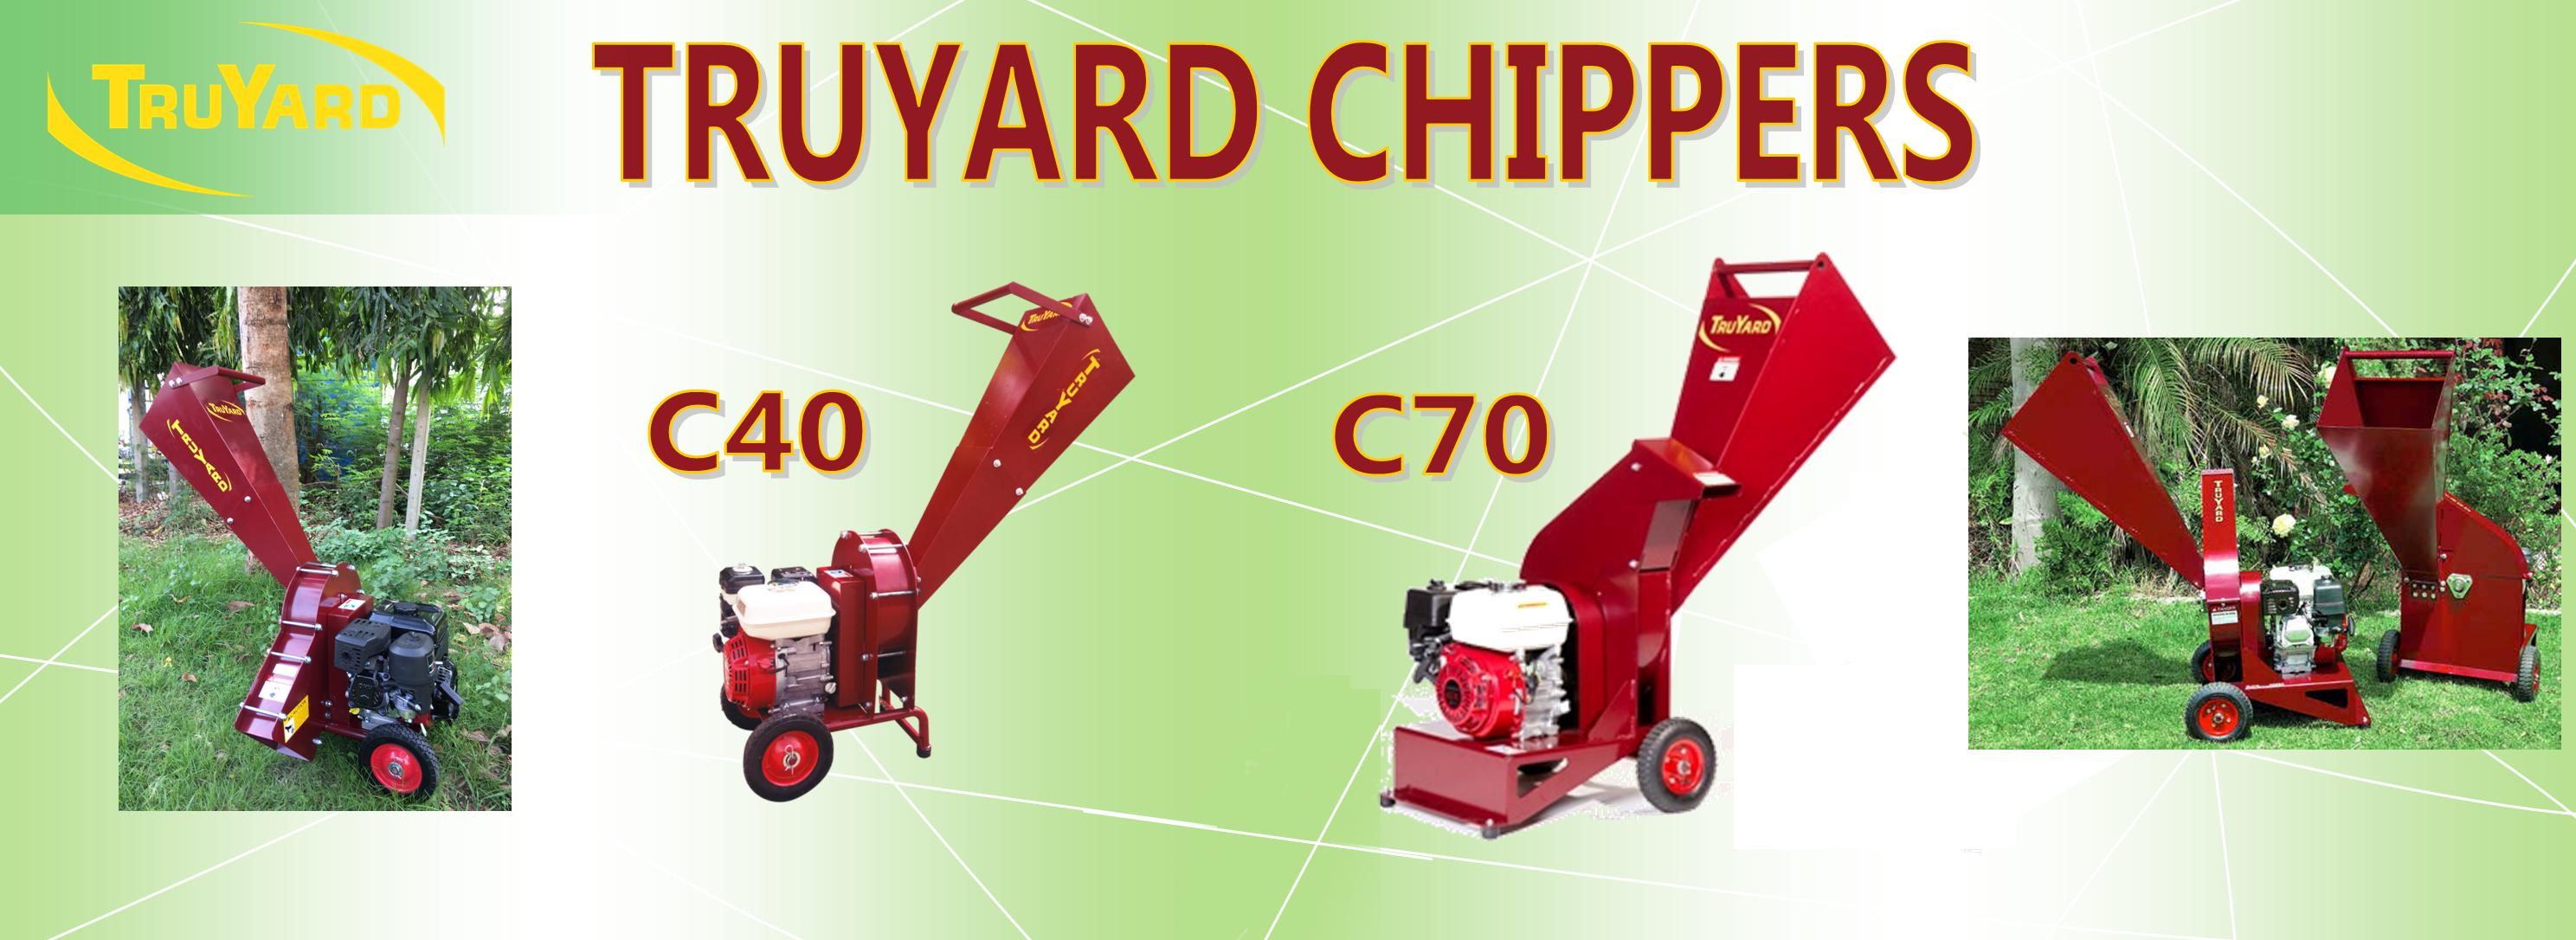 Chippers